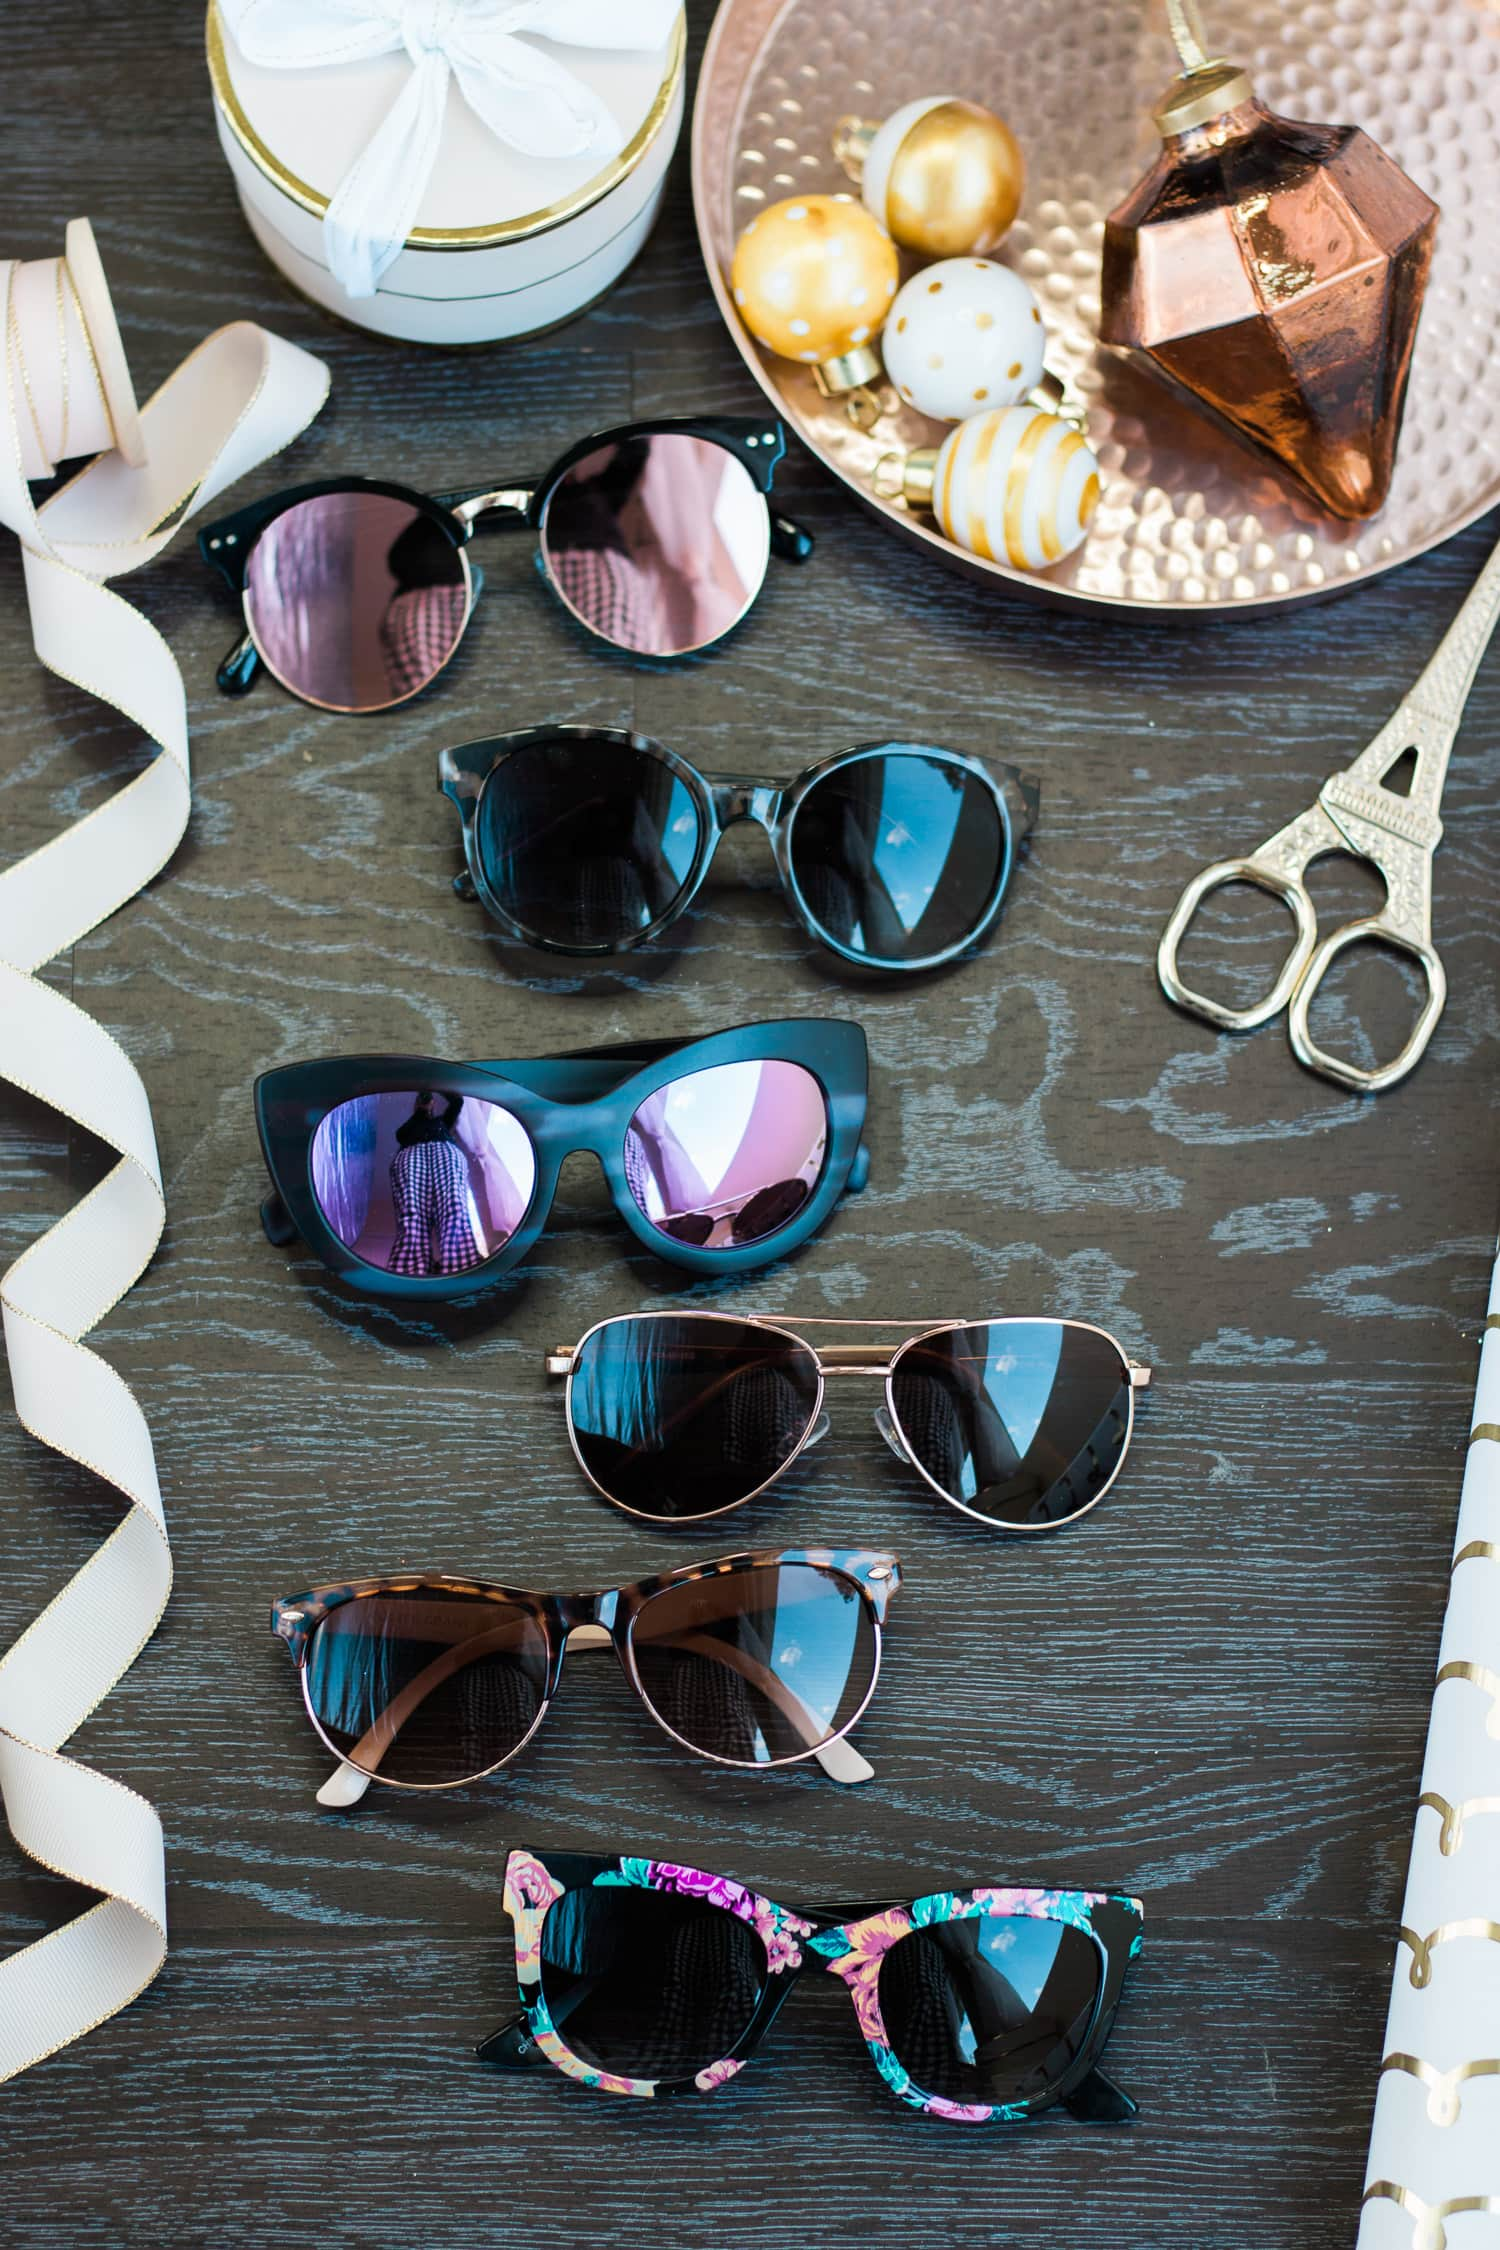 stocking-stuffers-for-women-and-teens-foster-grant-affordable-sunglasses-7019